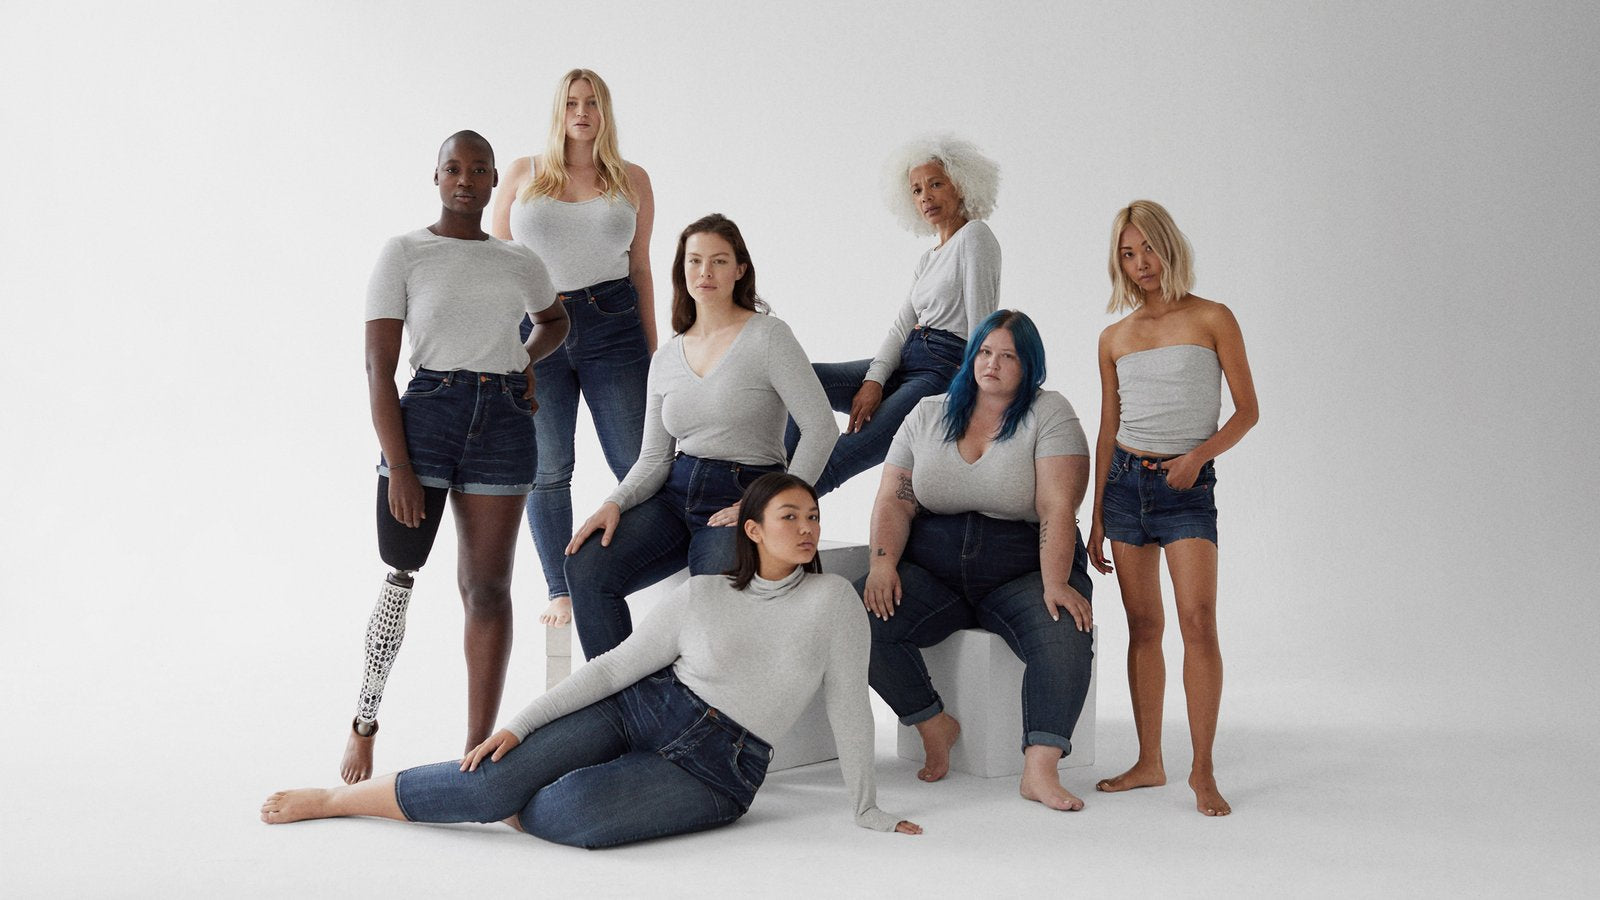 Universal Standard - Jeans for all sizes of women